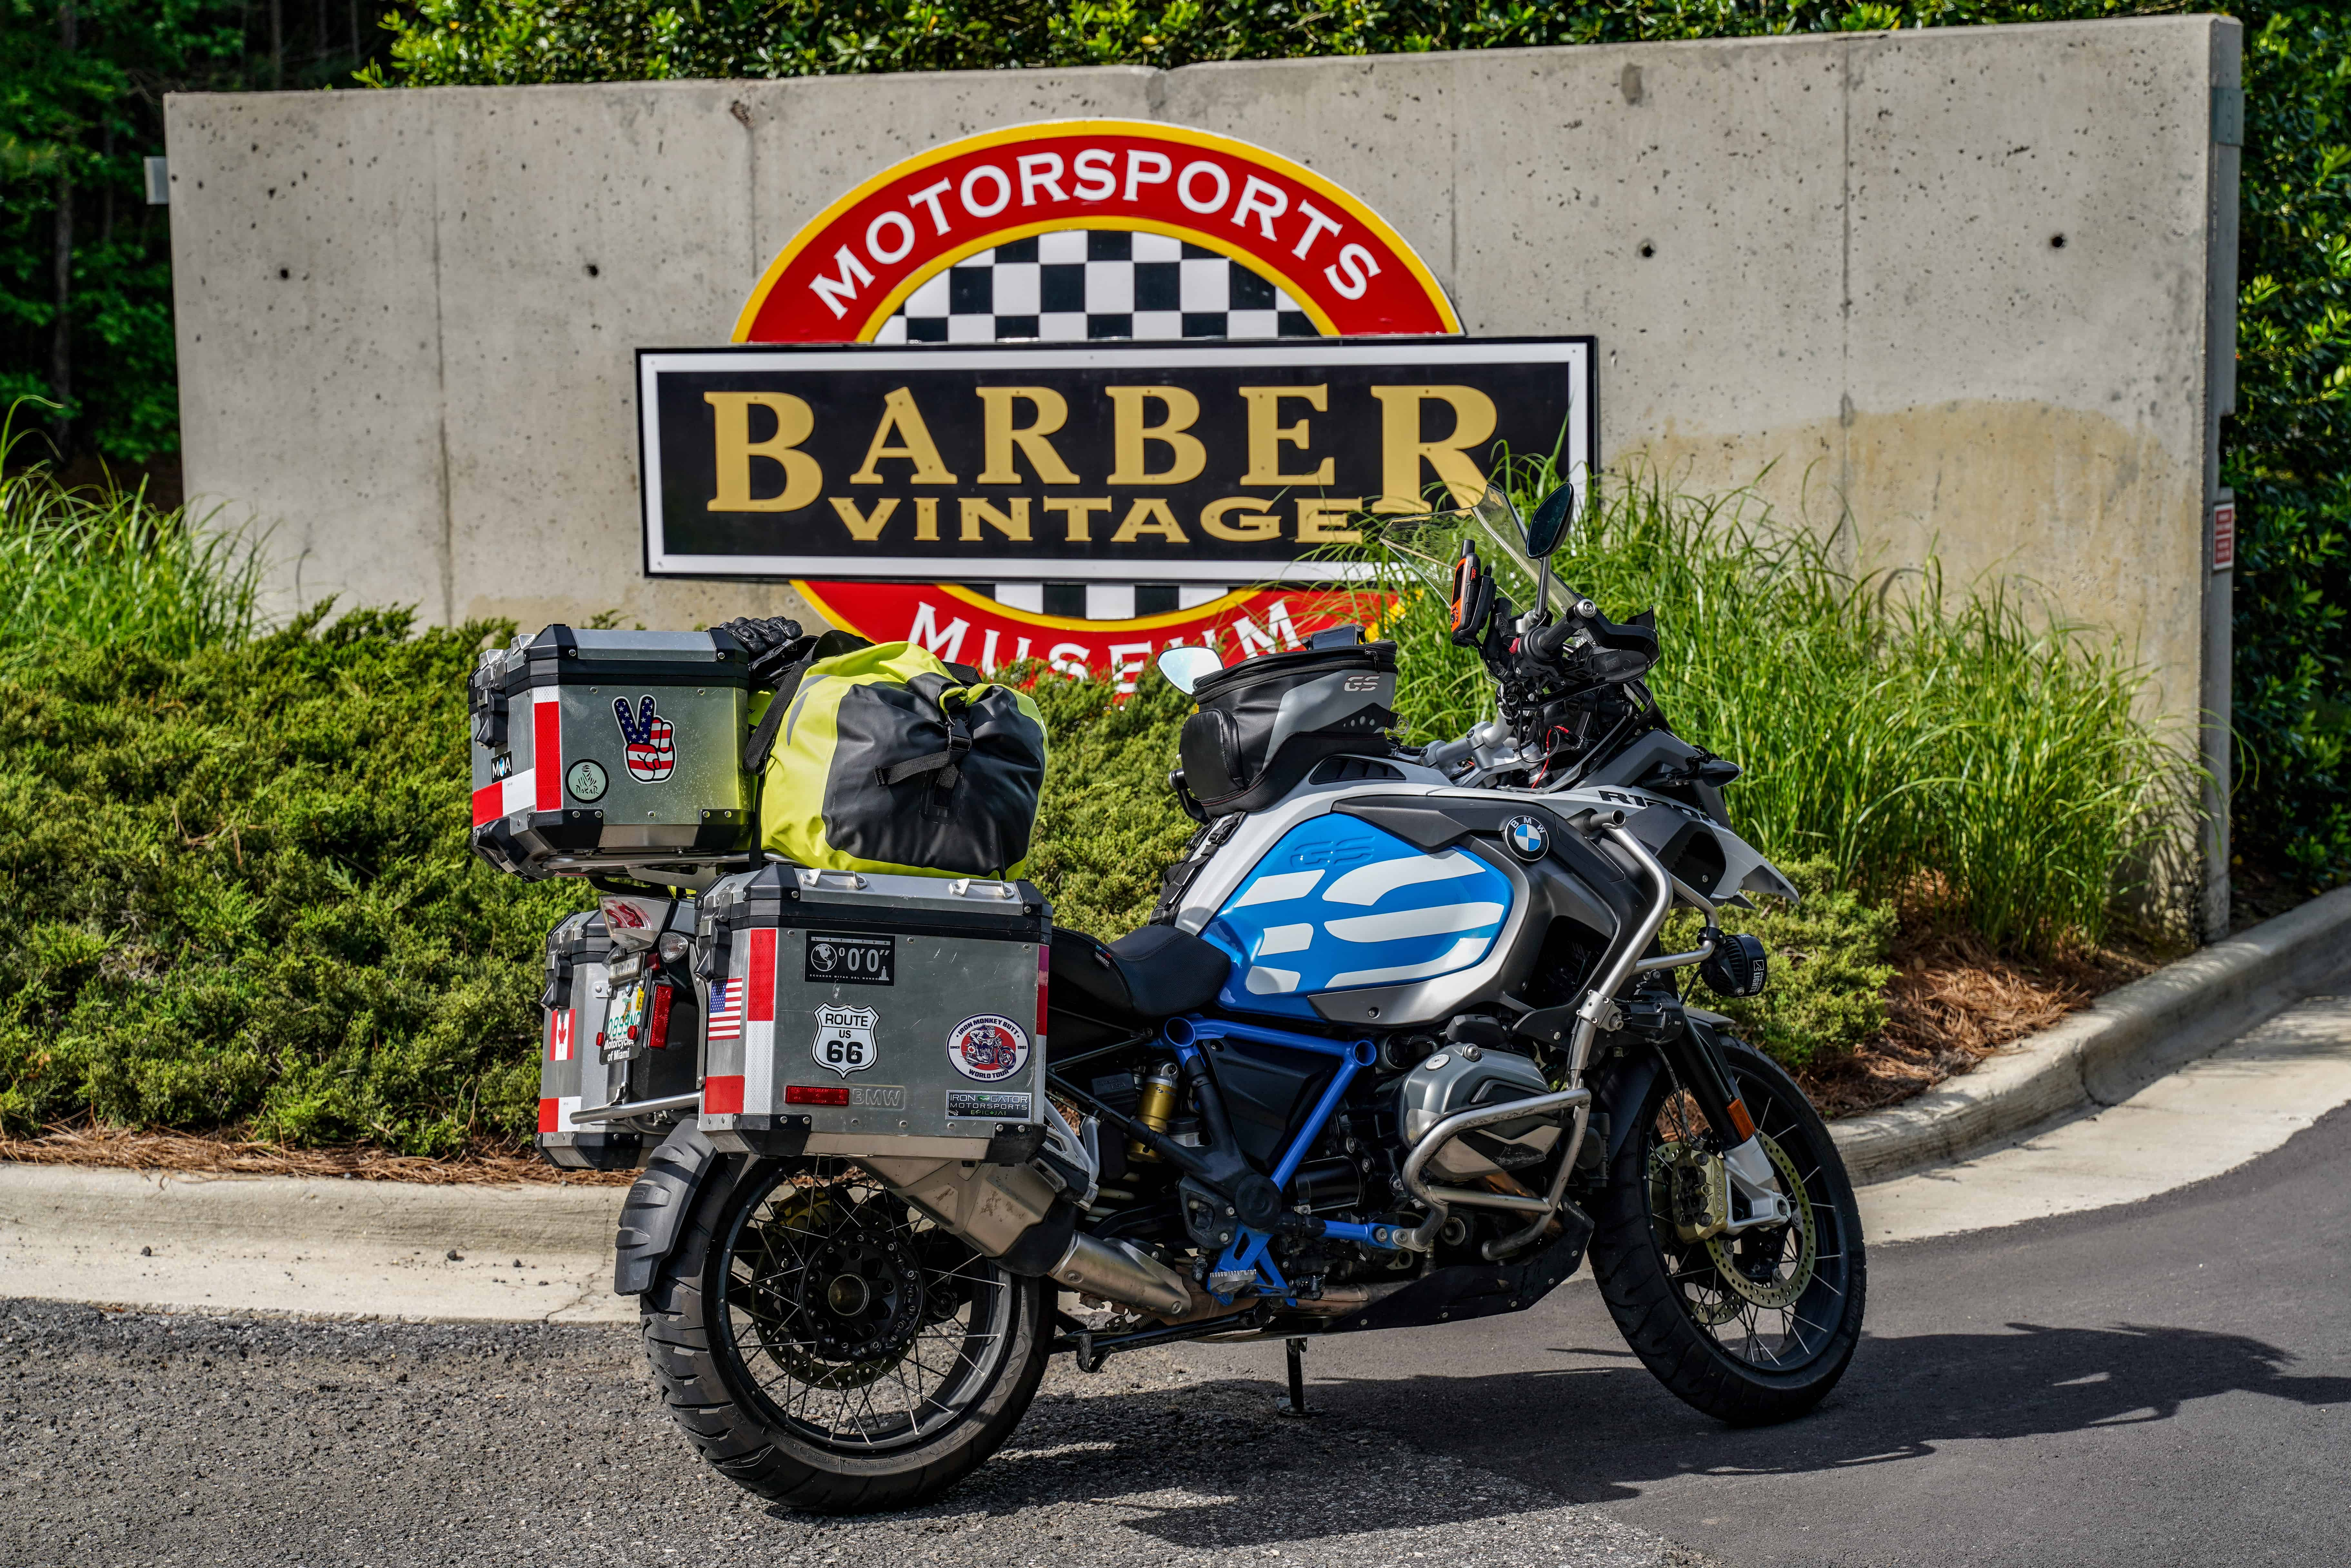 Barber Motor Museum Sign with R1200GS